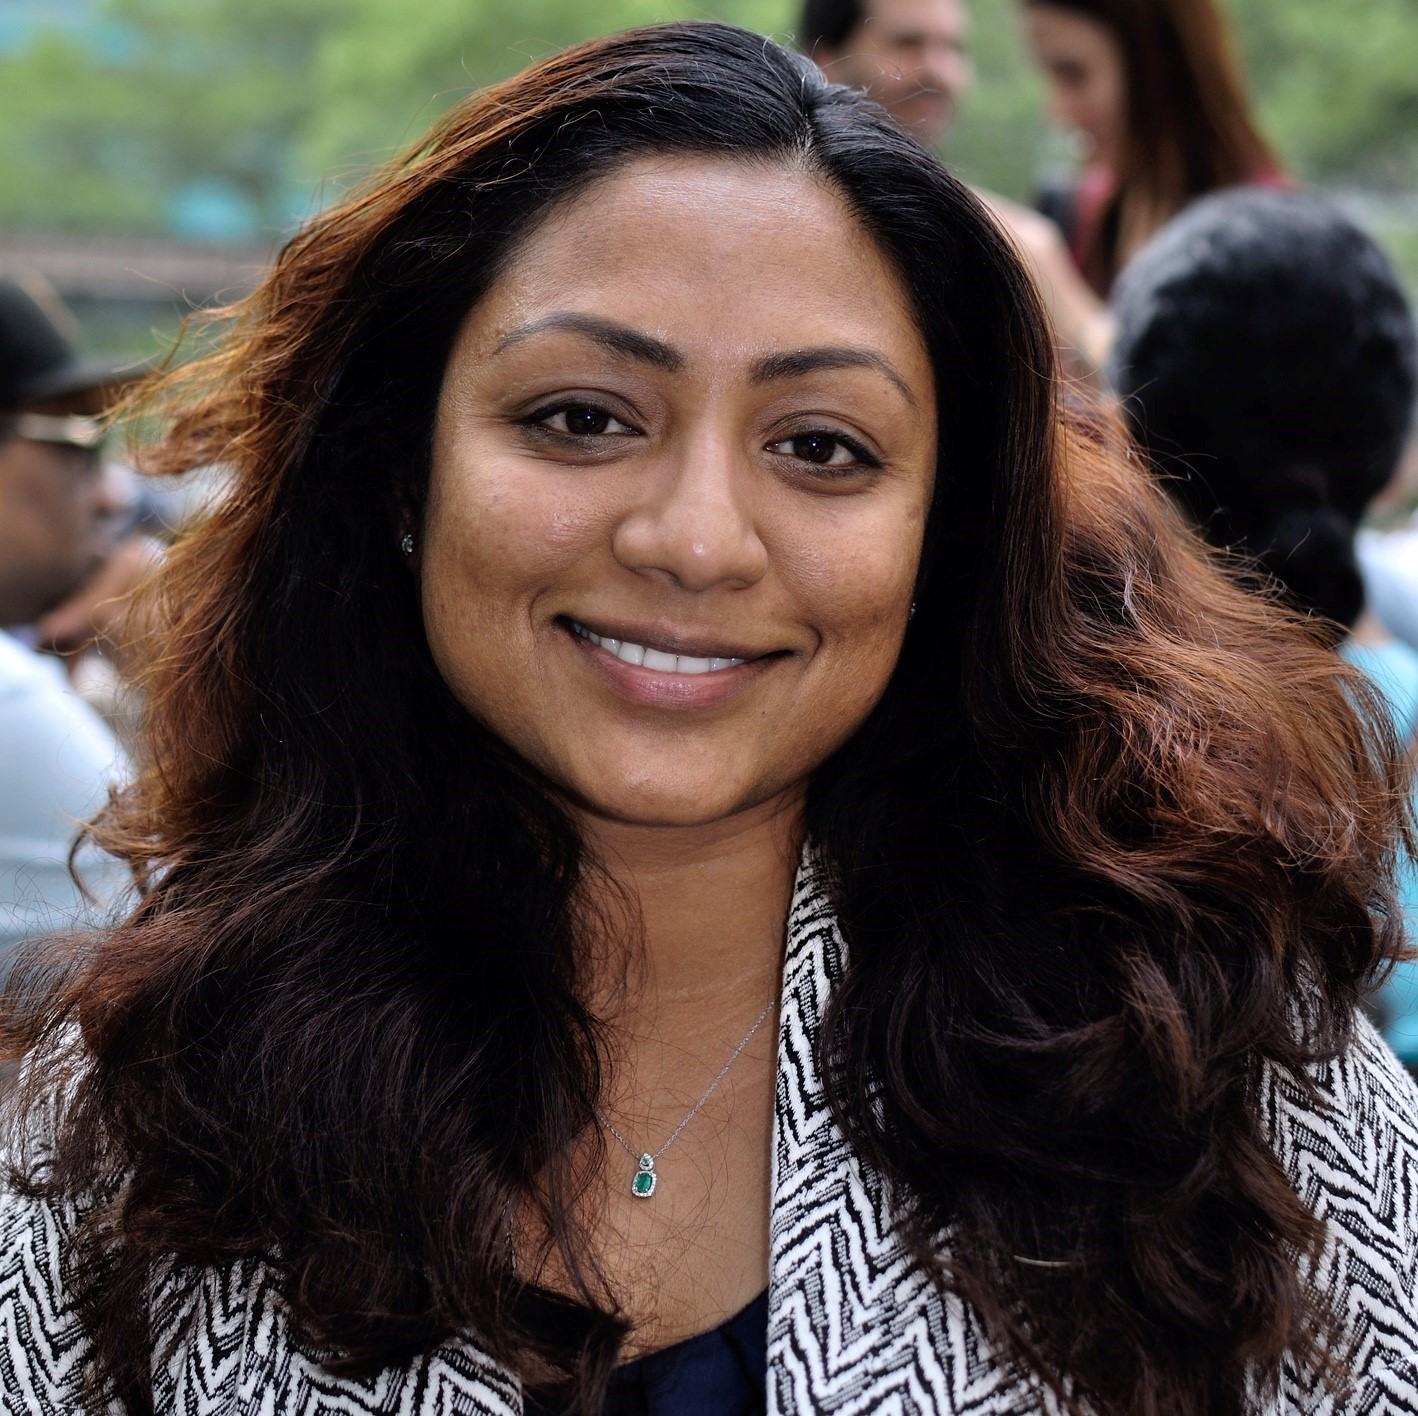 Nadira Ramudit, a graduate student from the Master of International Affairs program at the Marxe School of Public and International Affairs, is a 2019 Harold W. Rosenthal Fellowship recipient